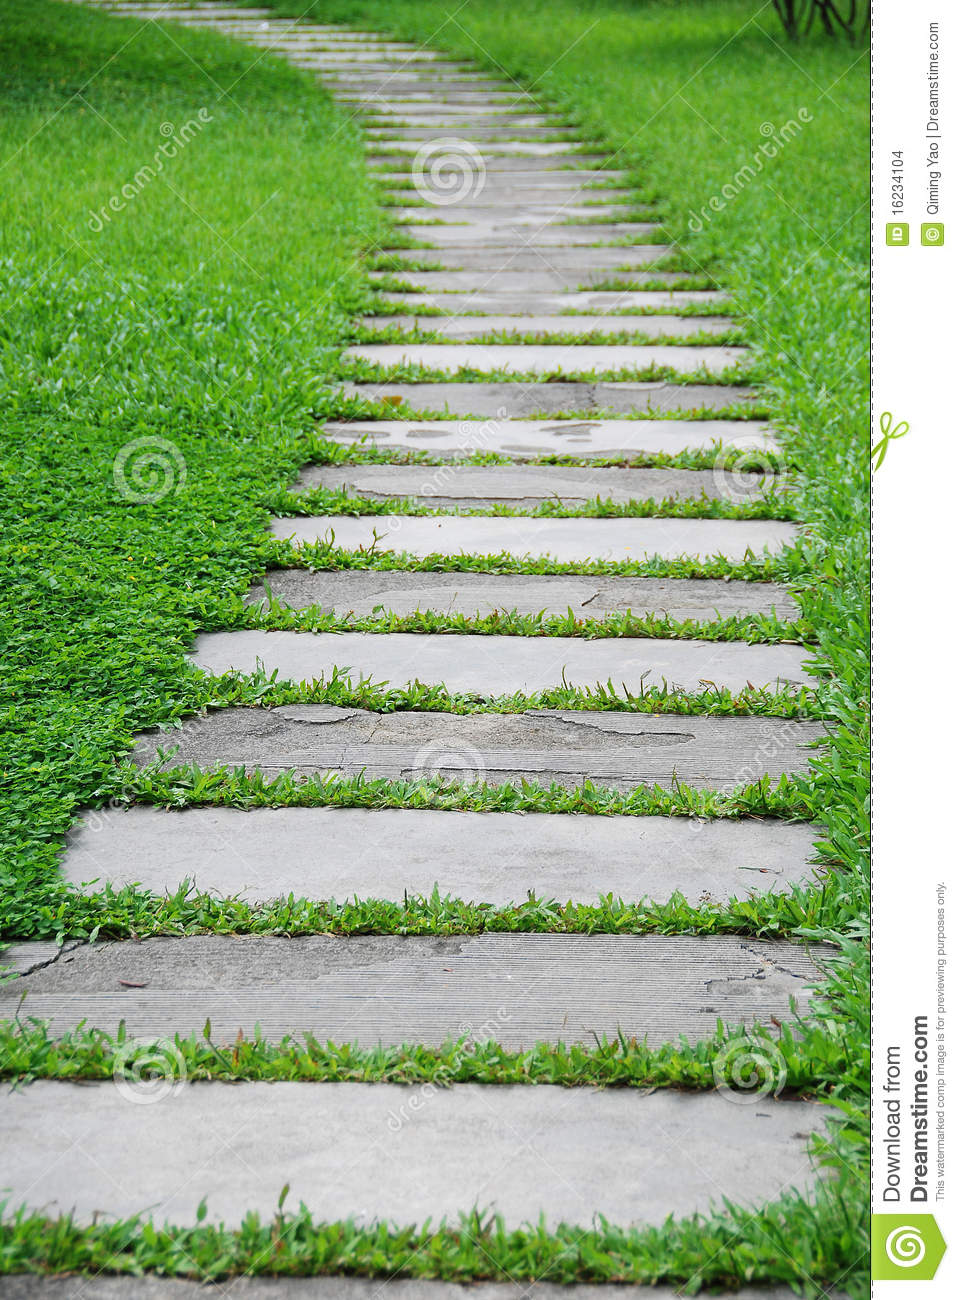 Stone path with green grass stock images image 16234104 for Stone path in grass